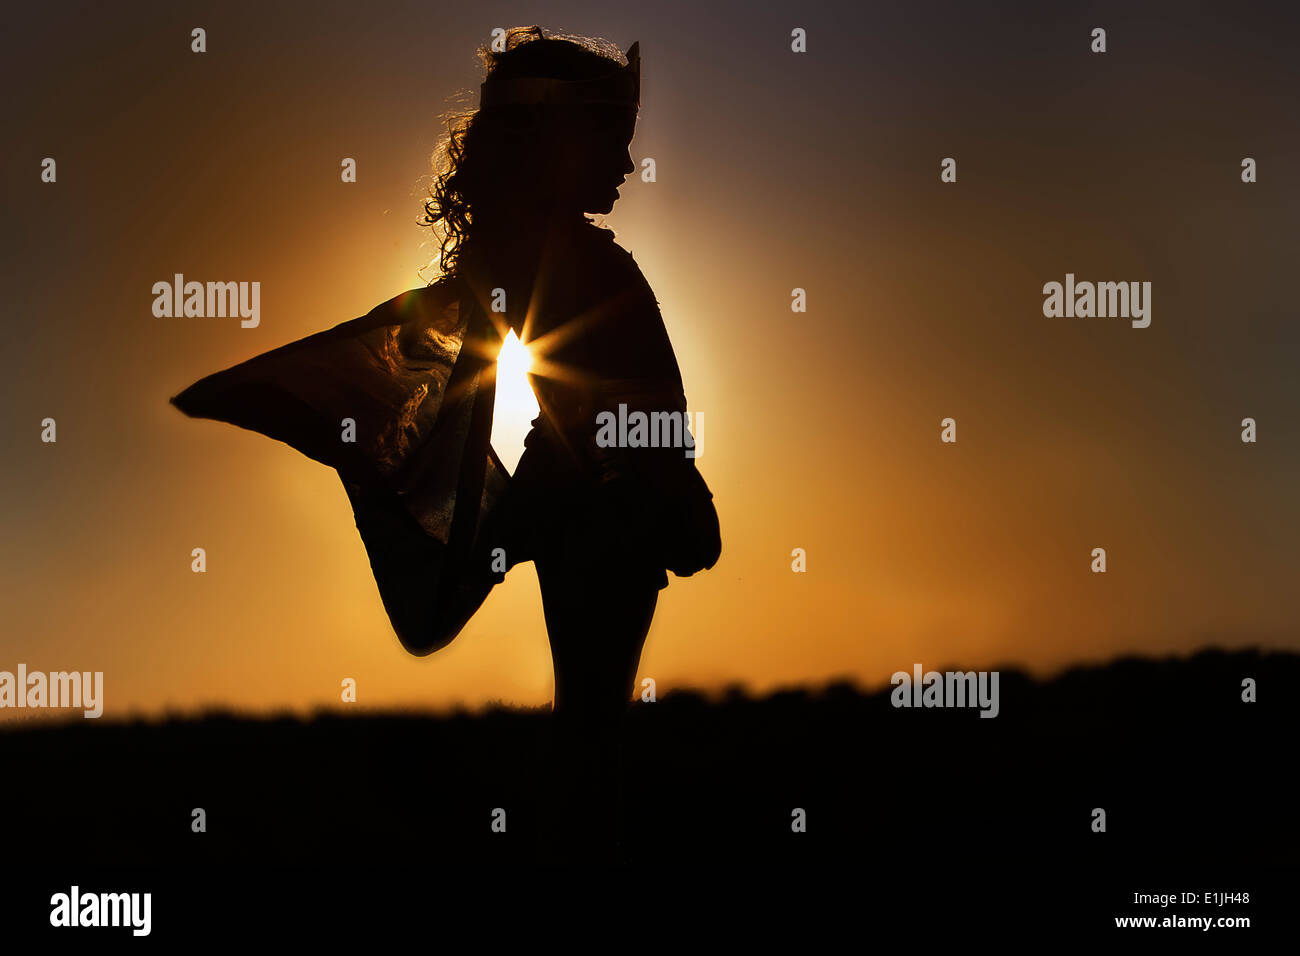 Silhouette of young girl in winged fairy costume at sunset - Stock Image